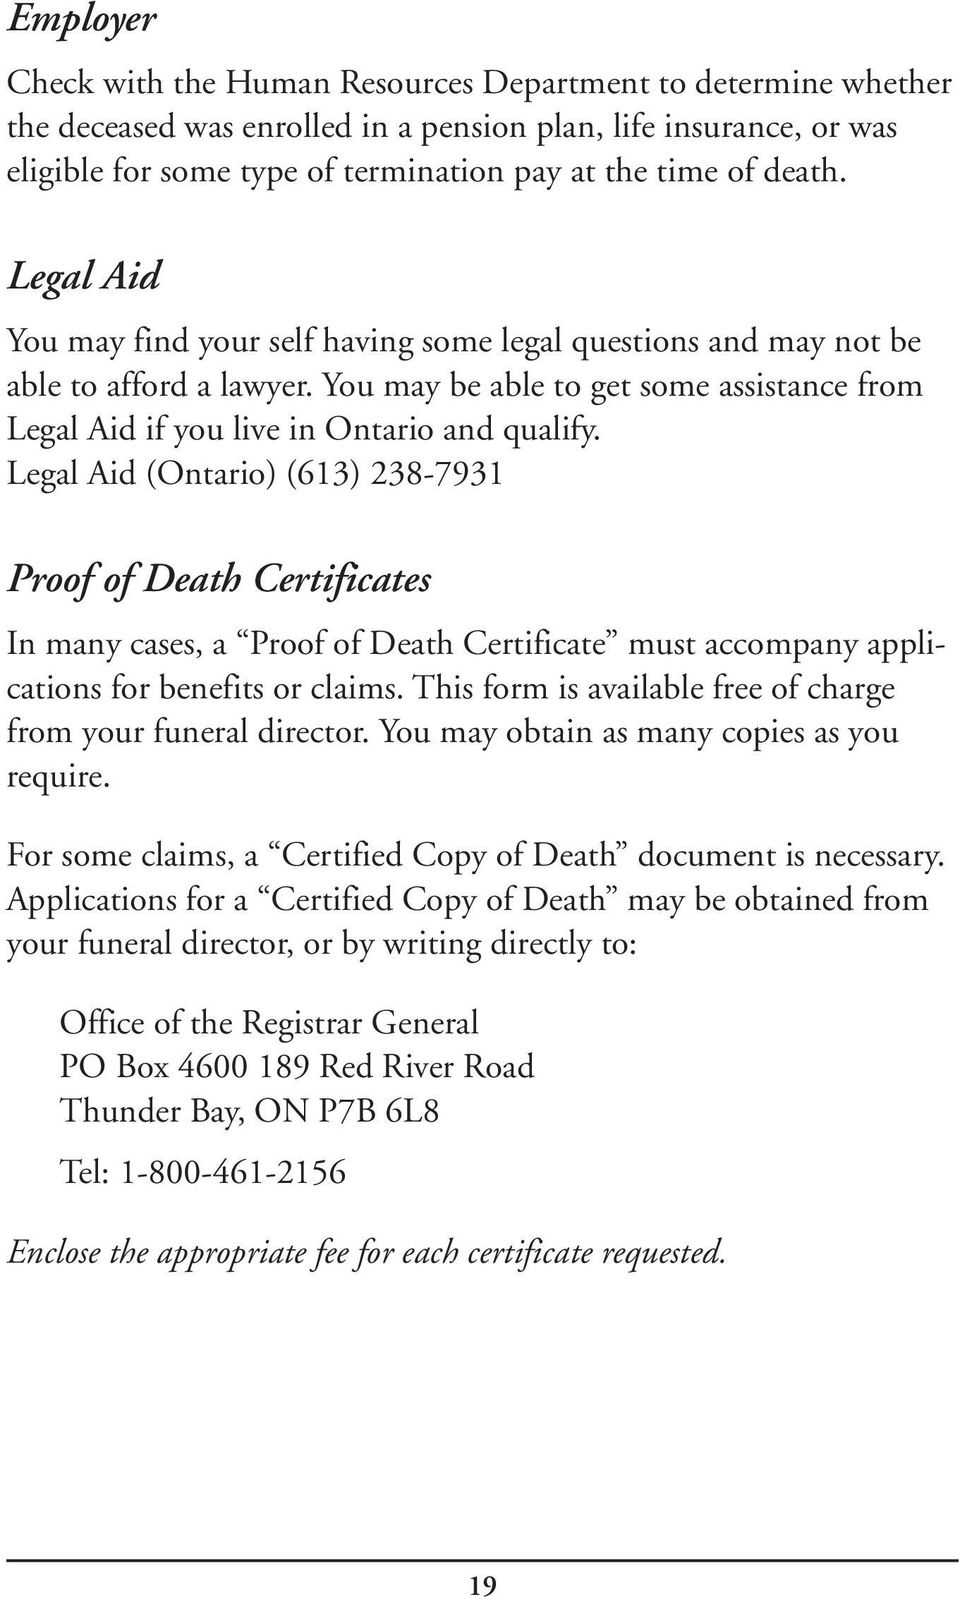 Legal Aid (Ontario) (613) 238-7931 Proof of Death Certificates In many cases, a Proof of Death Certificate must accompany applications for benefits or claims.